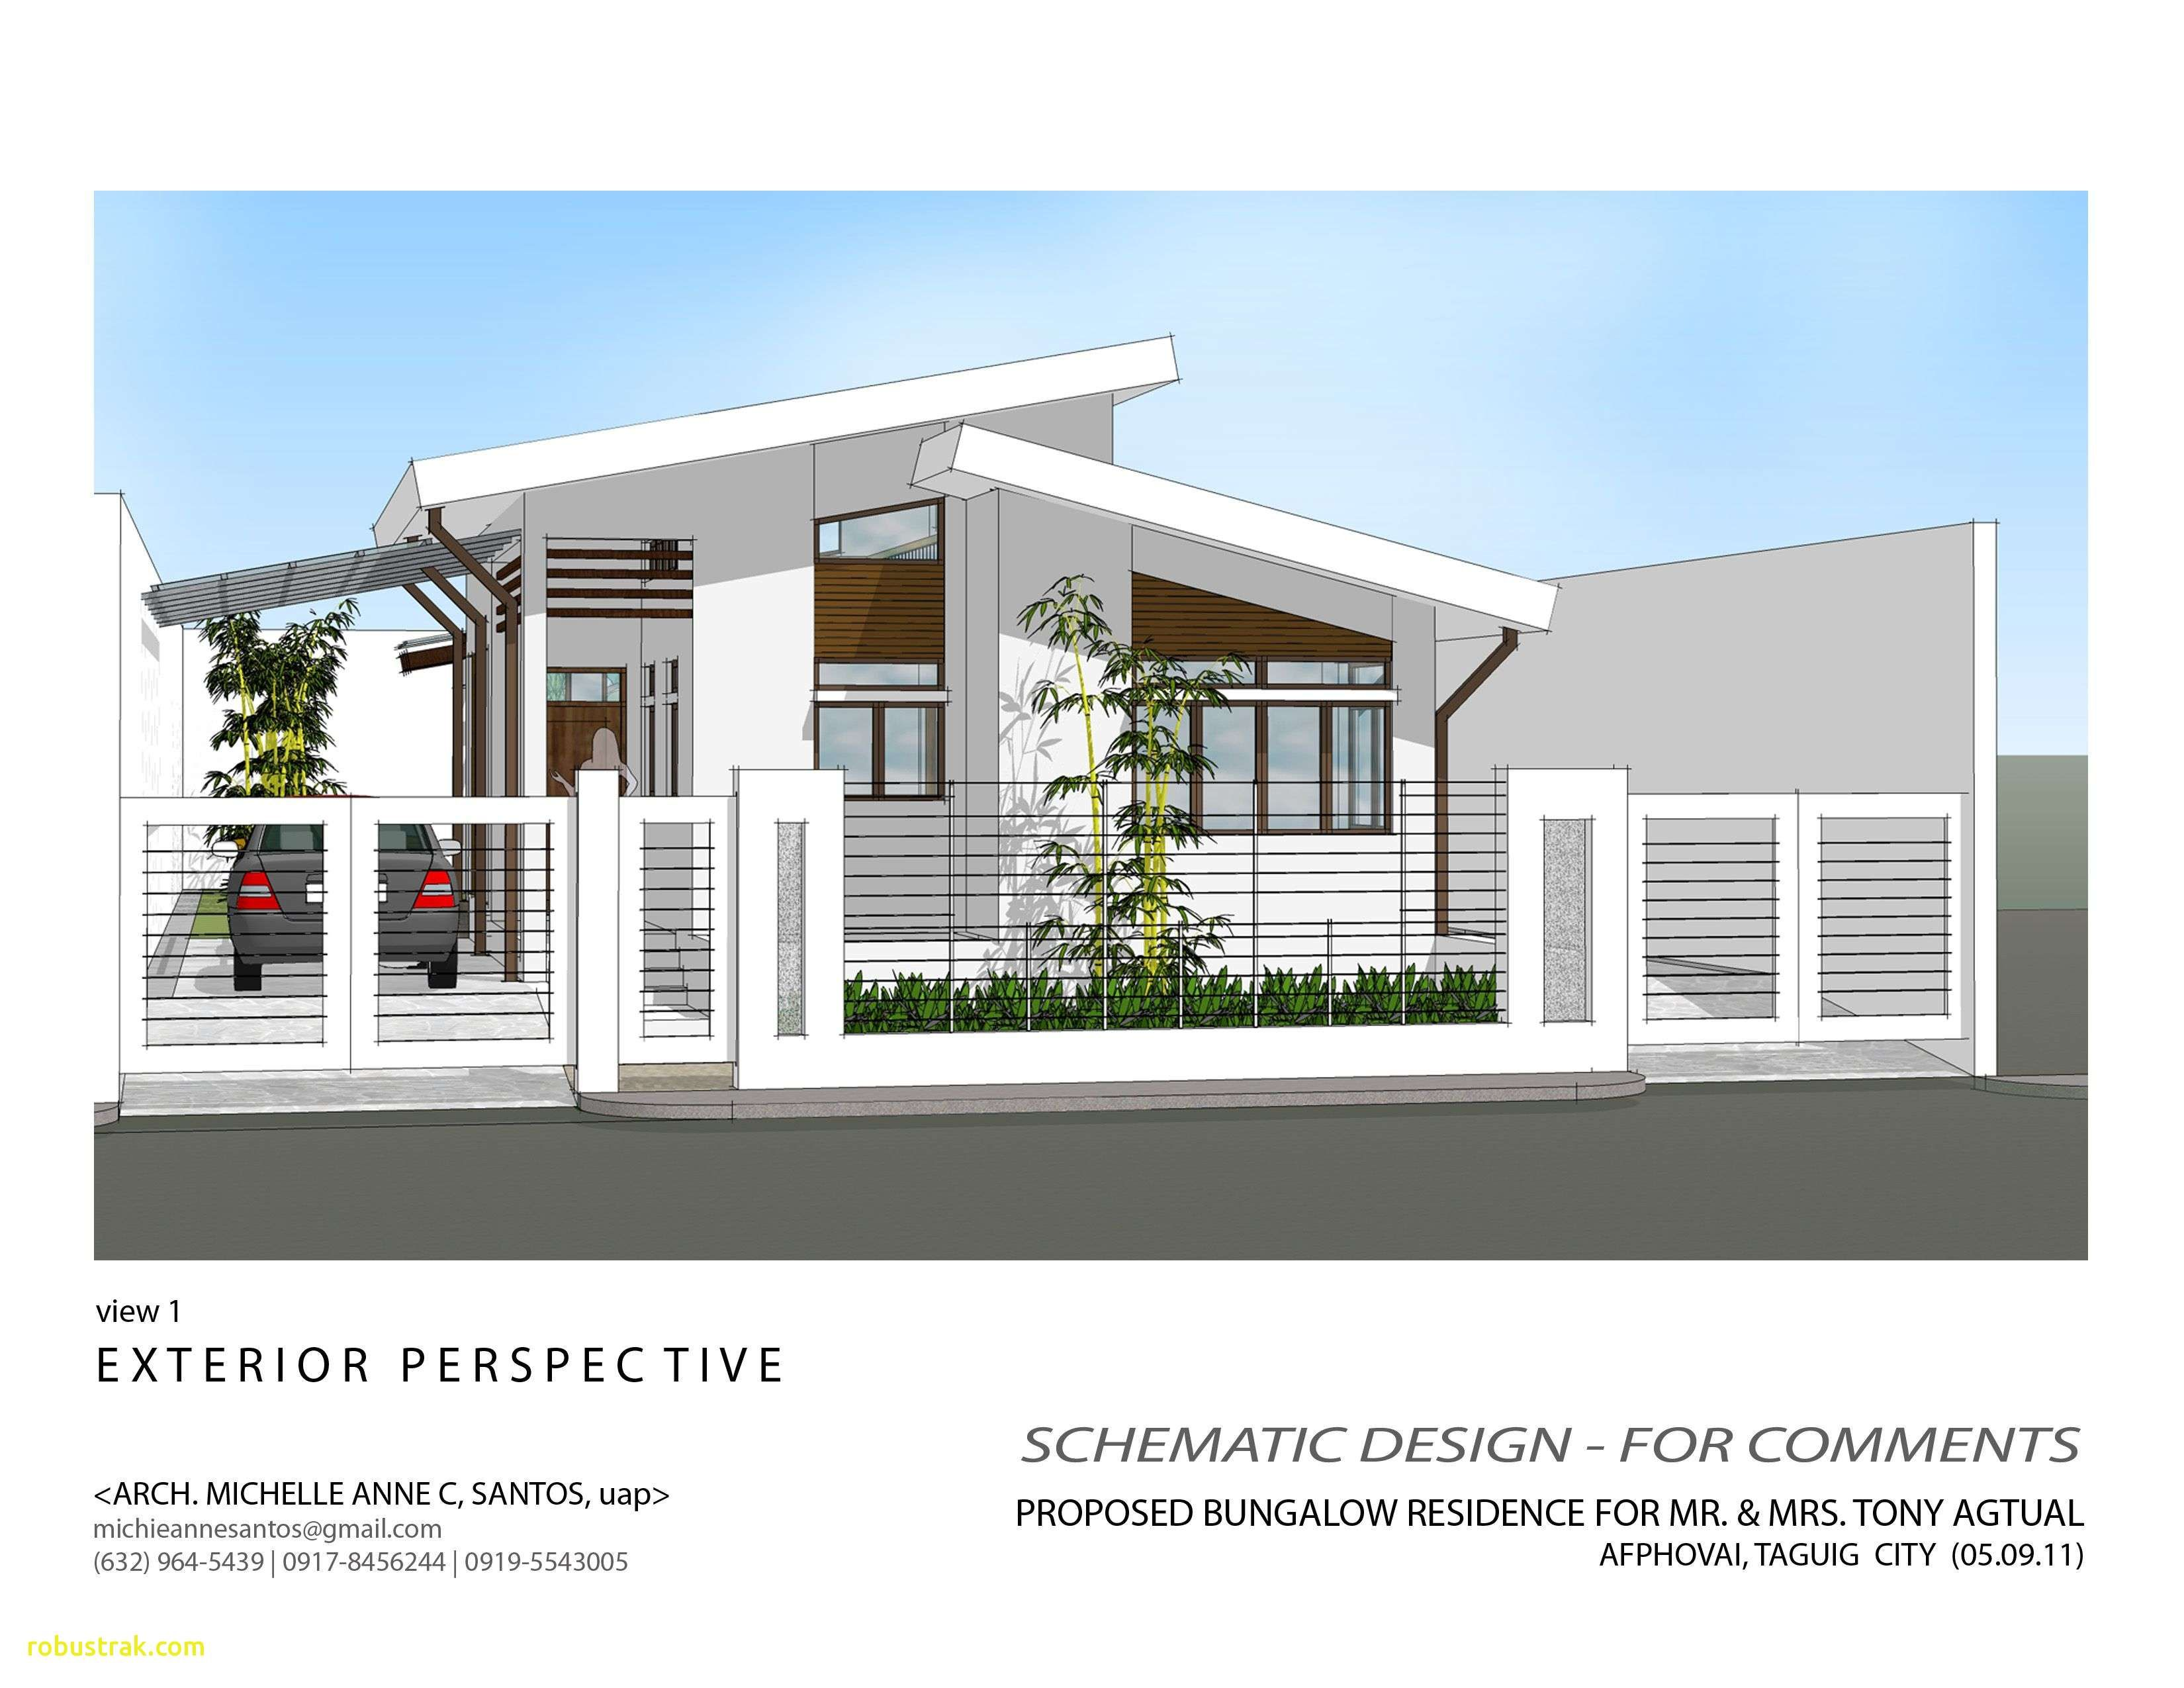 New Bungalow Houses In Philippines Pictures Home Design Ideas Modern Bungalow House Bungalow House Design Bungalow House Plans